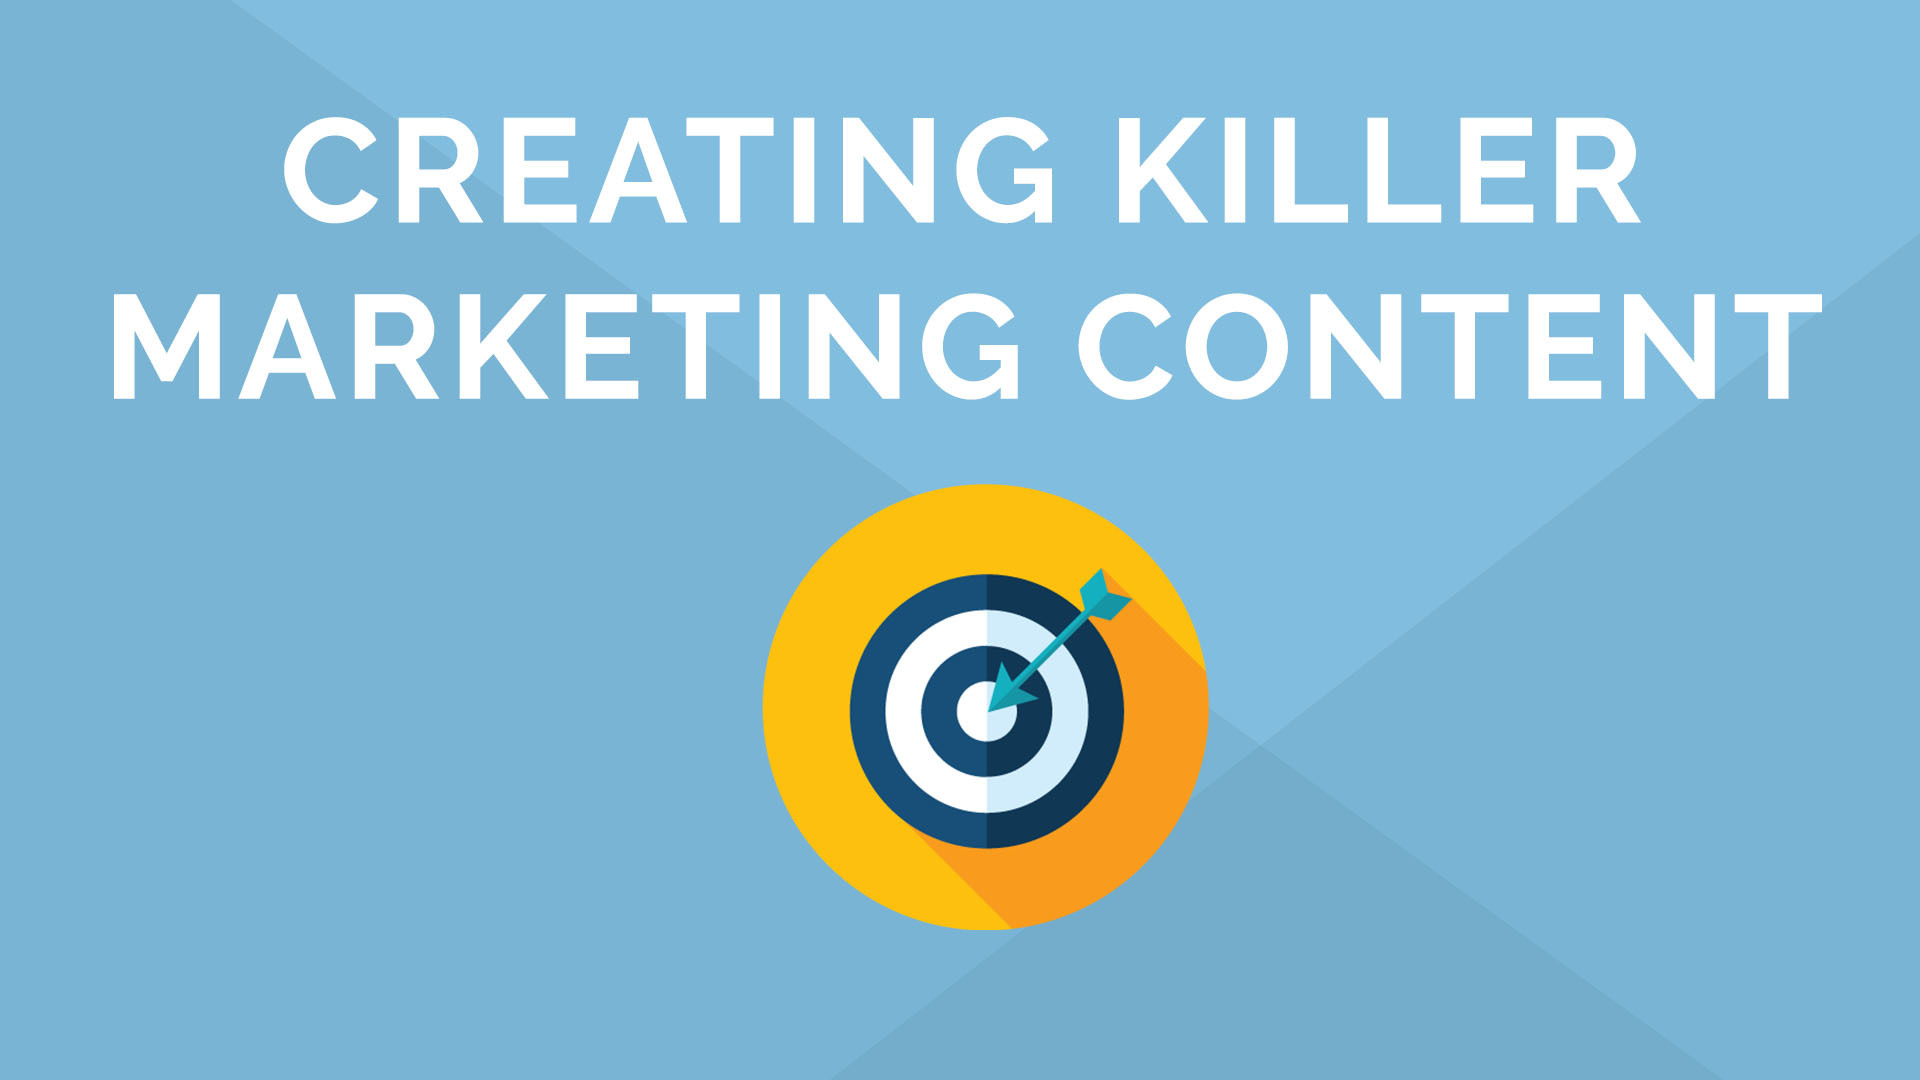 How to Create Killer Marketing Content in 15 minutes